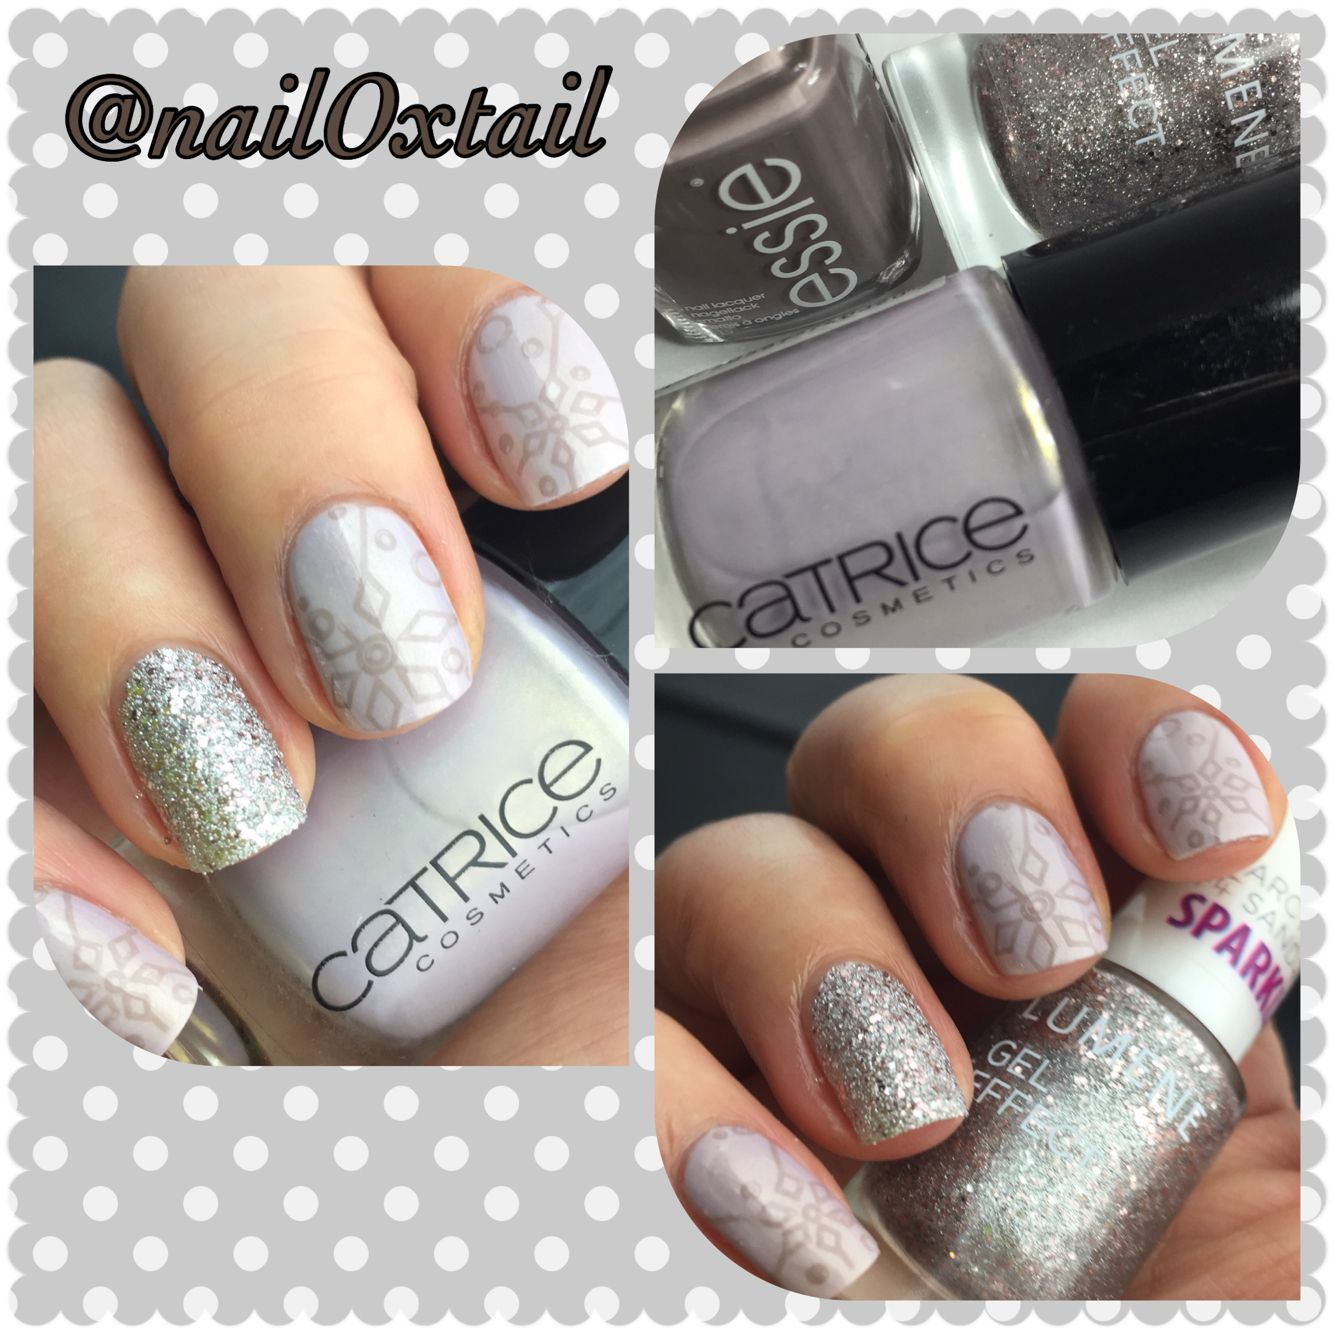 Lumene Silver Sand, Catrice Lilactric, Essie Chinchilly